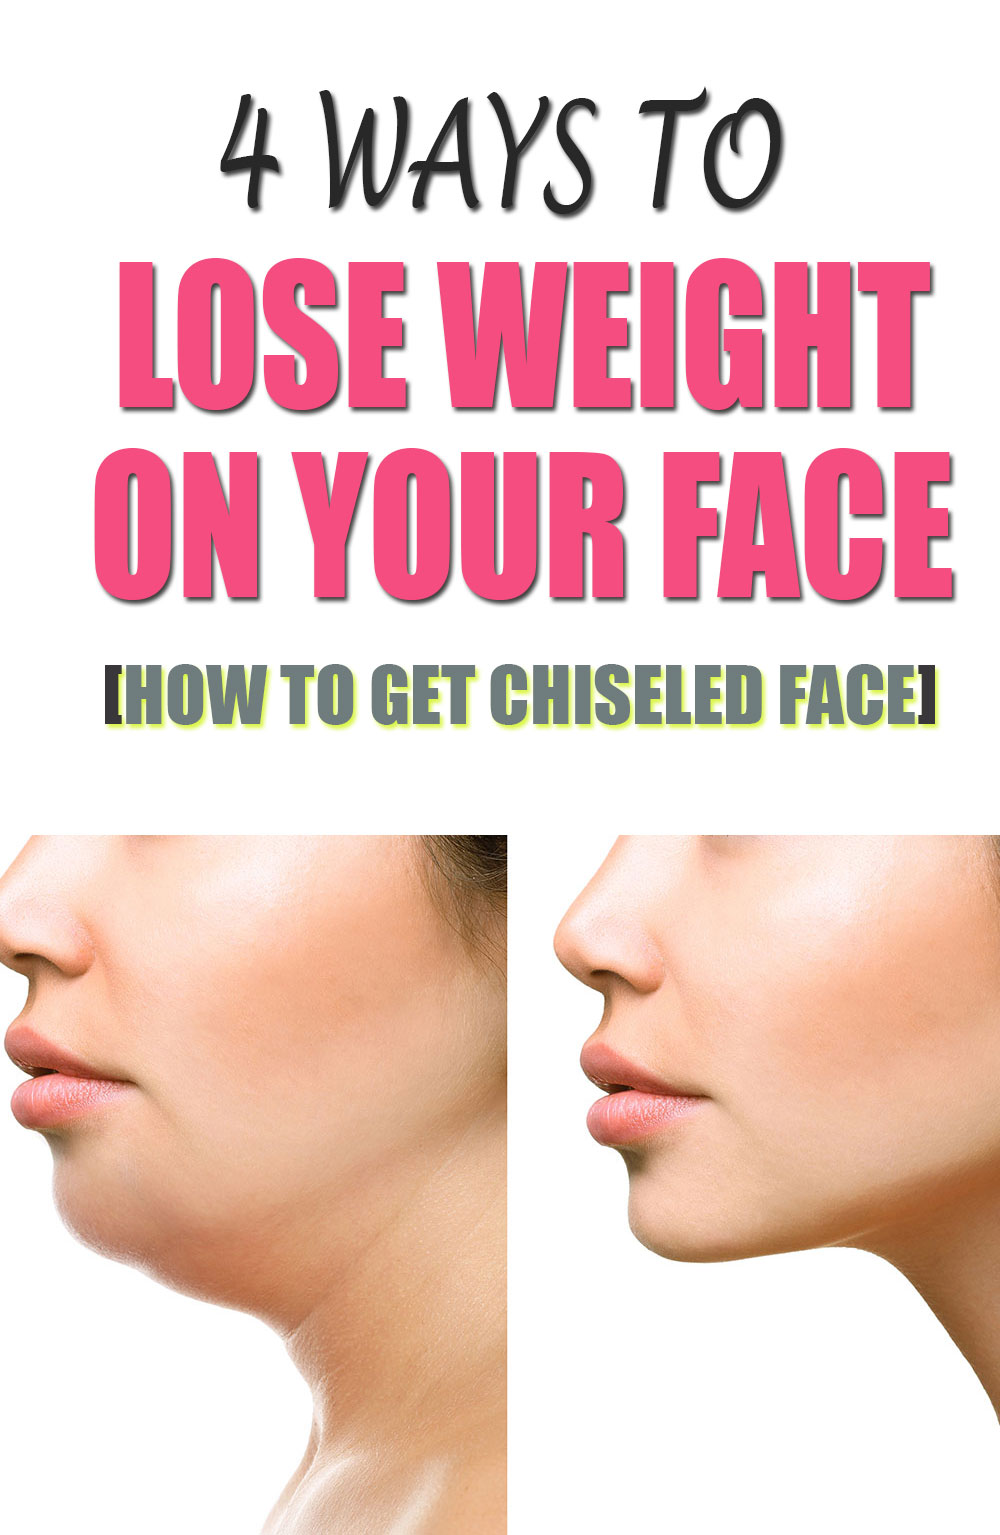 4 ways to lose weight on your face